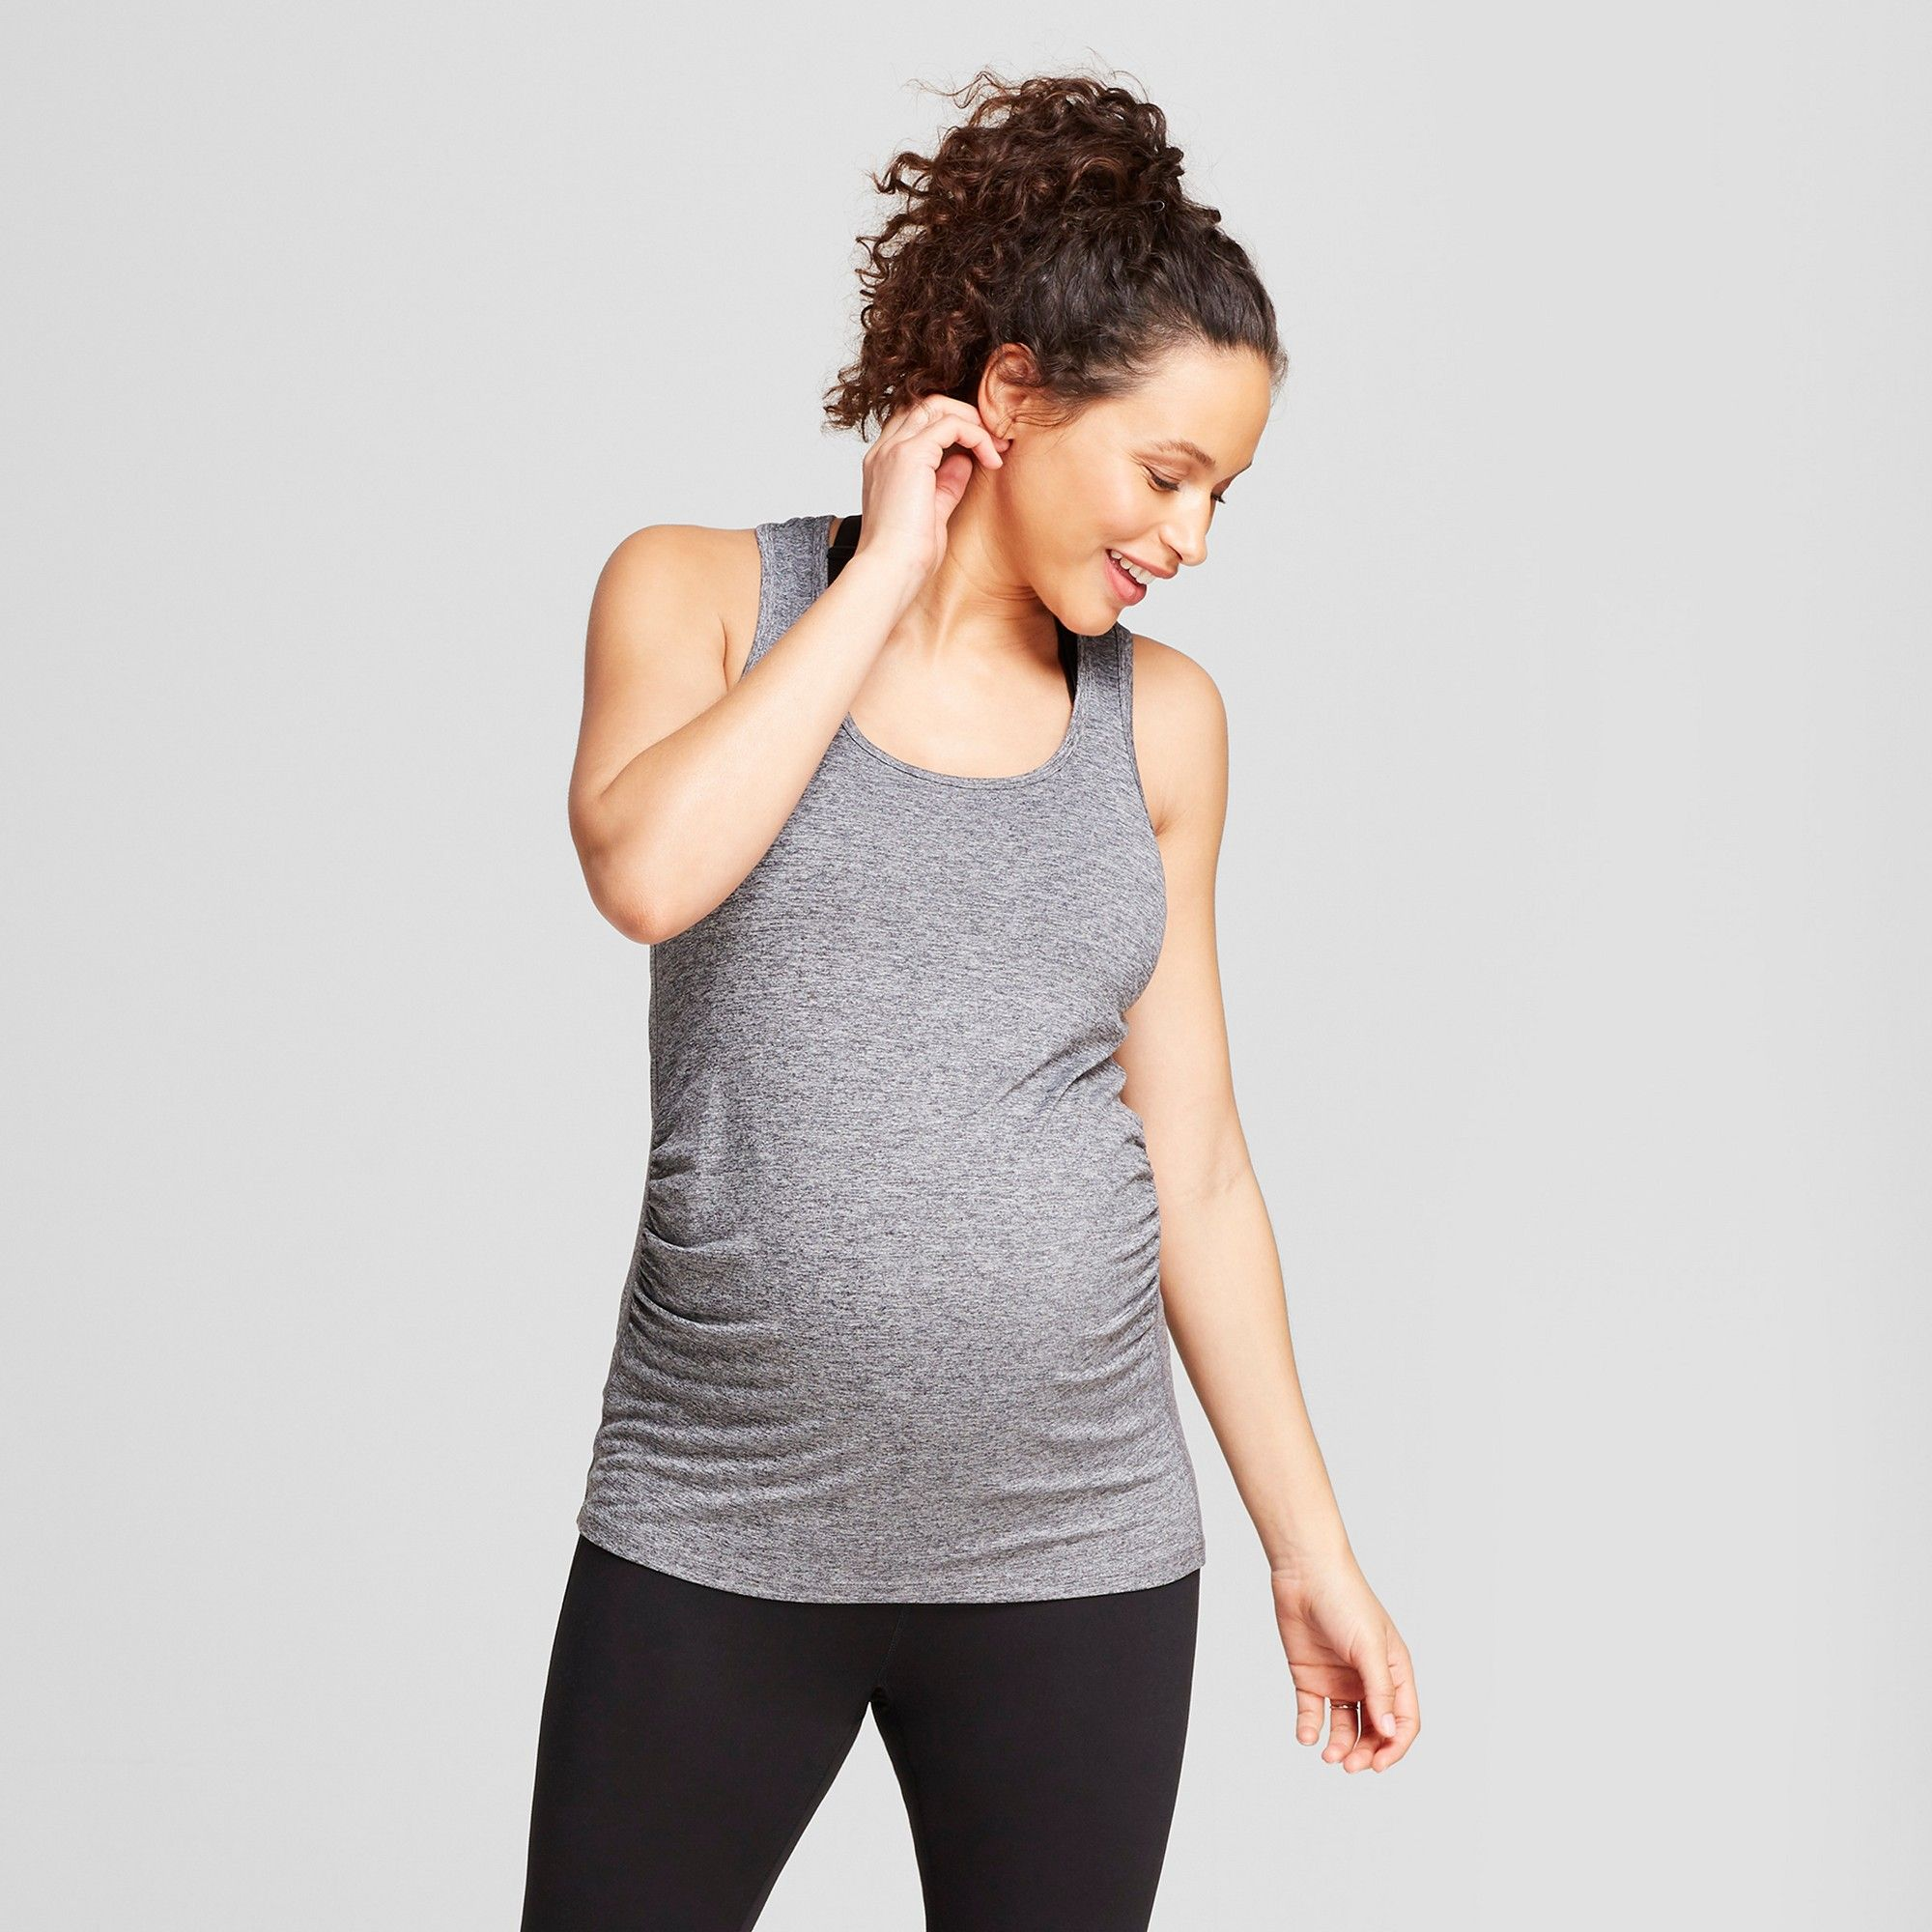 d7ec4ca2fbba10 Maternity Core Long Tank Top - C9 Champion Dark Heather Gray Xxl ...